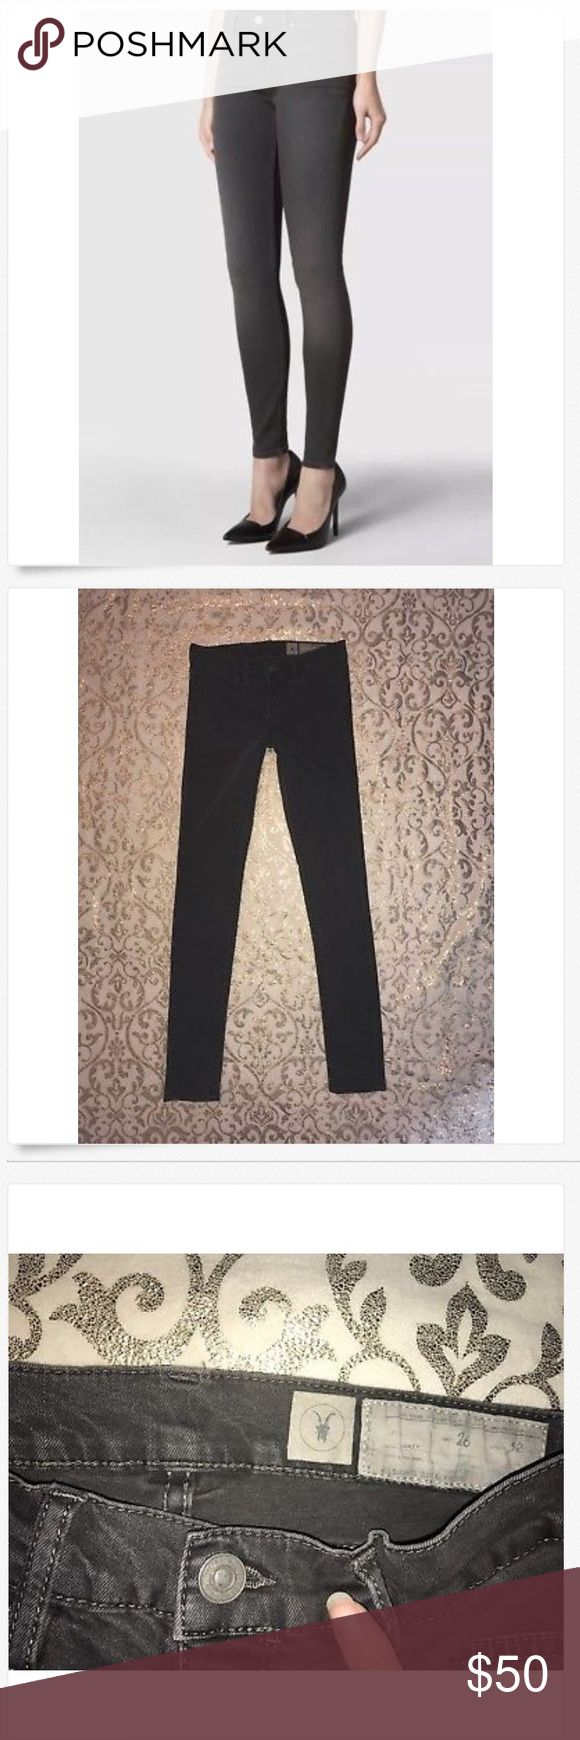 All Saints Spitalfields ASHBY Super Skinny Jeans! All Saints Spitalfields Mid Rise ASHBY Super Skinny Grey Jeans! 26 x 29 Great Used!! 98% cotton & 2% spandex 13 across & 7 rise All Saints Jeans Skinny